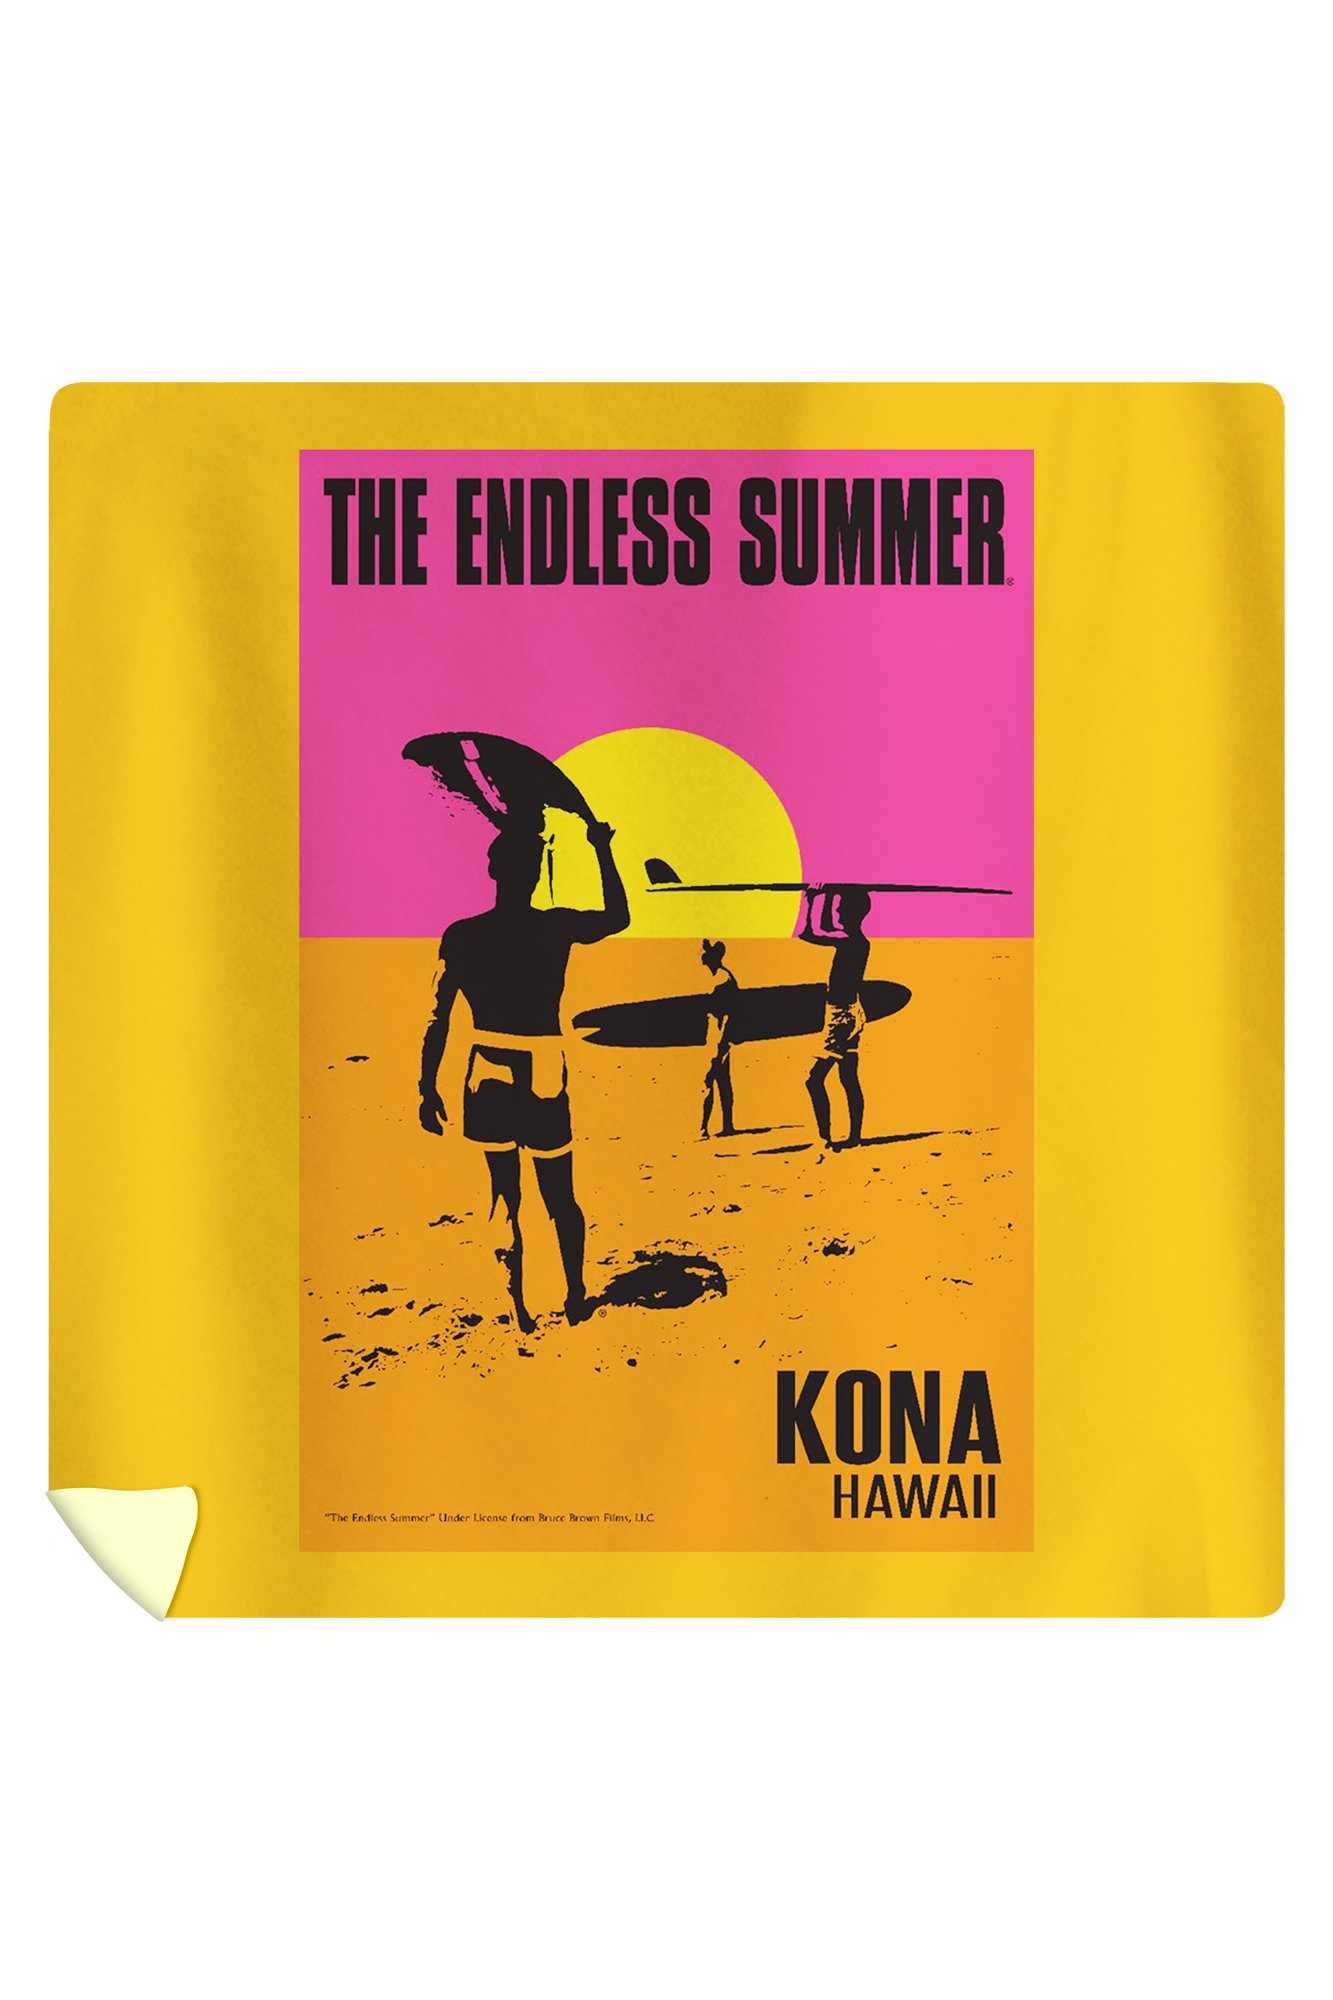 Kona, Hawaii - The Endless Summer - Original Movie Poster (88x88 Queen Microfiber Duvet Cover)